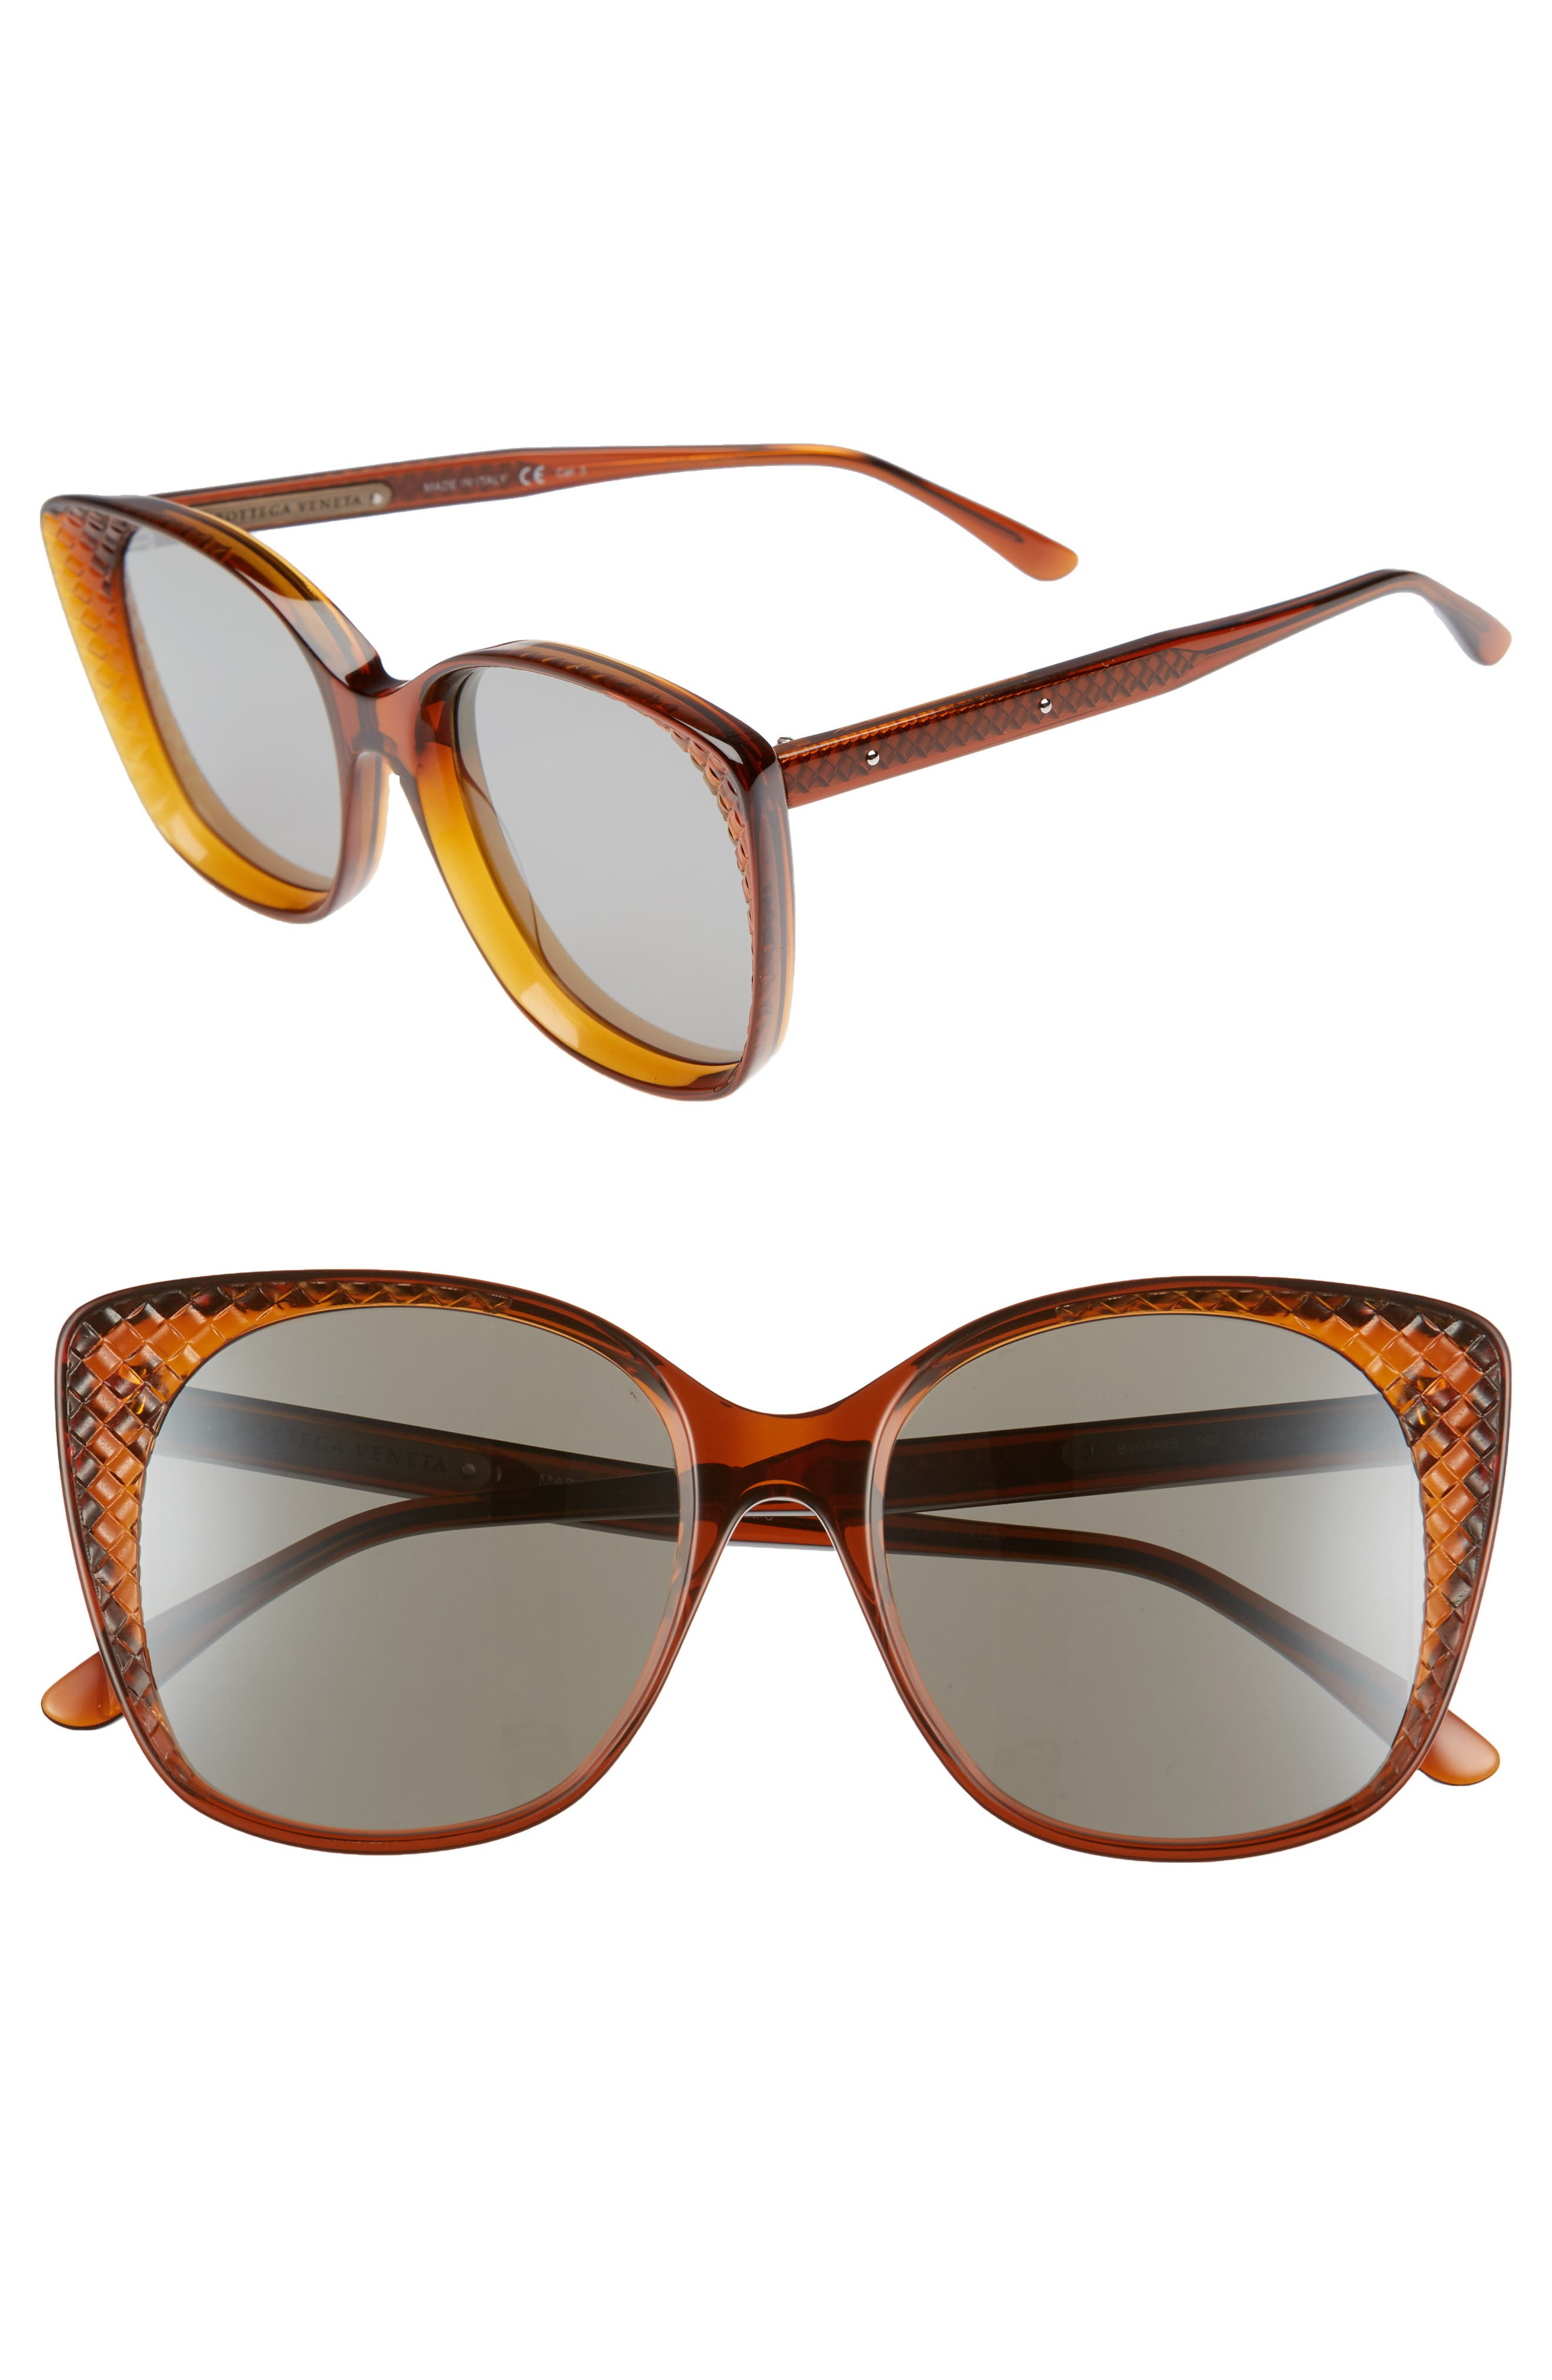 54mm Sunglasses,                         Main,                         color, Chocolate Brown